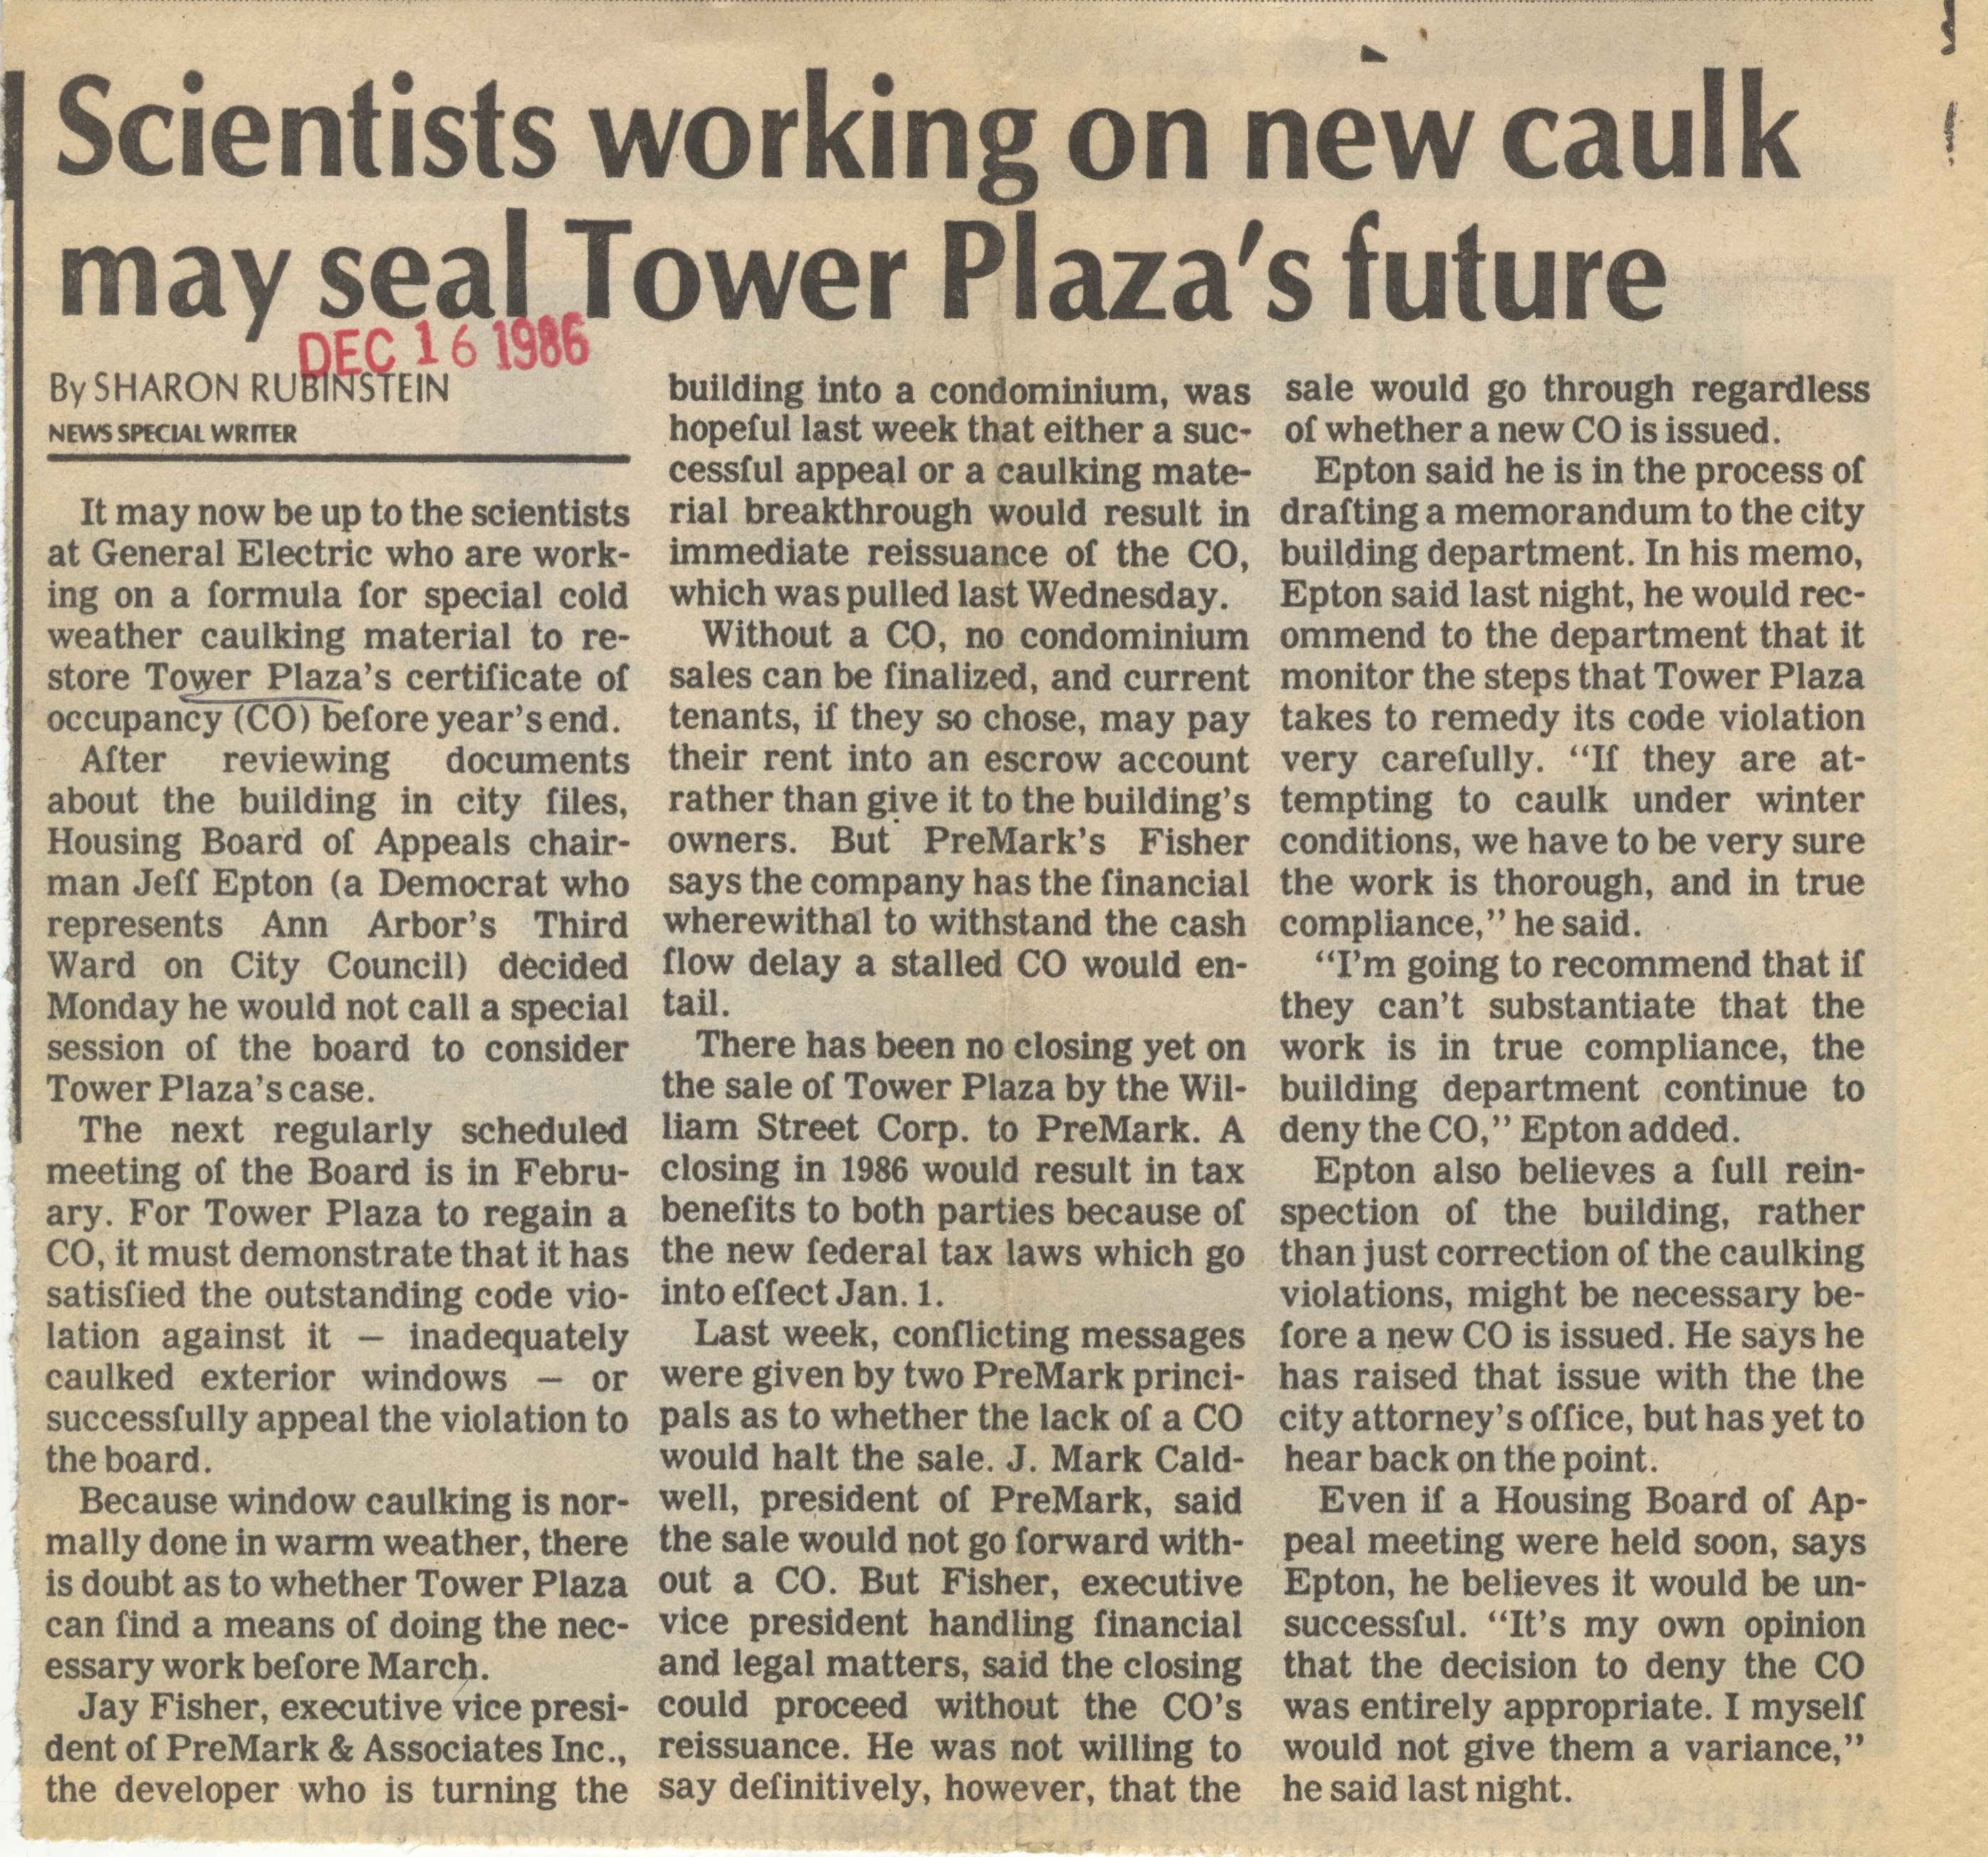 Scientists Working On New Caulk May Seal Tower Plaza's Future image